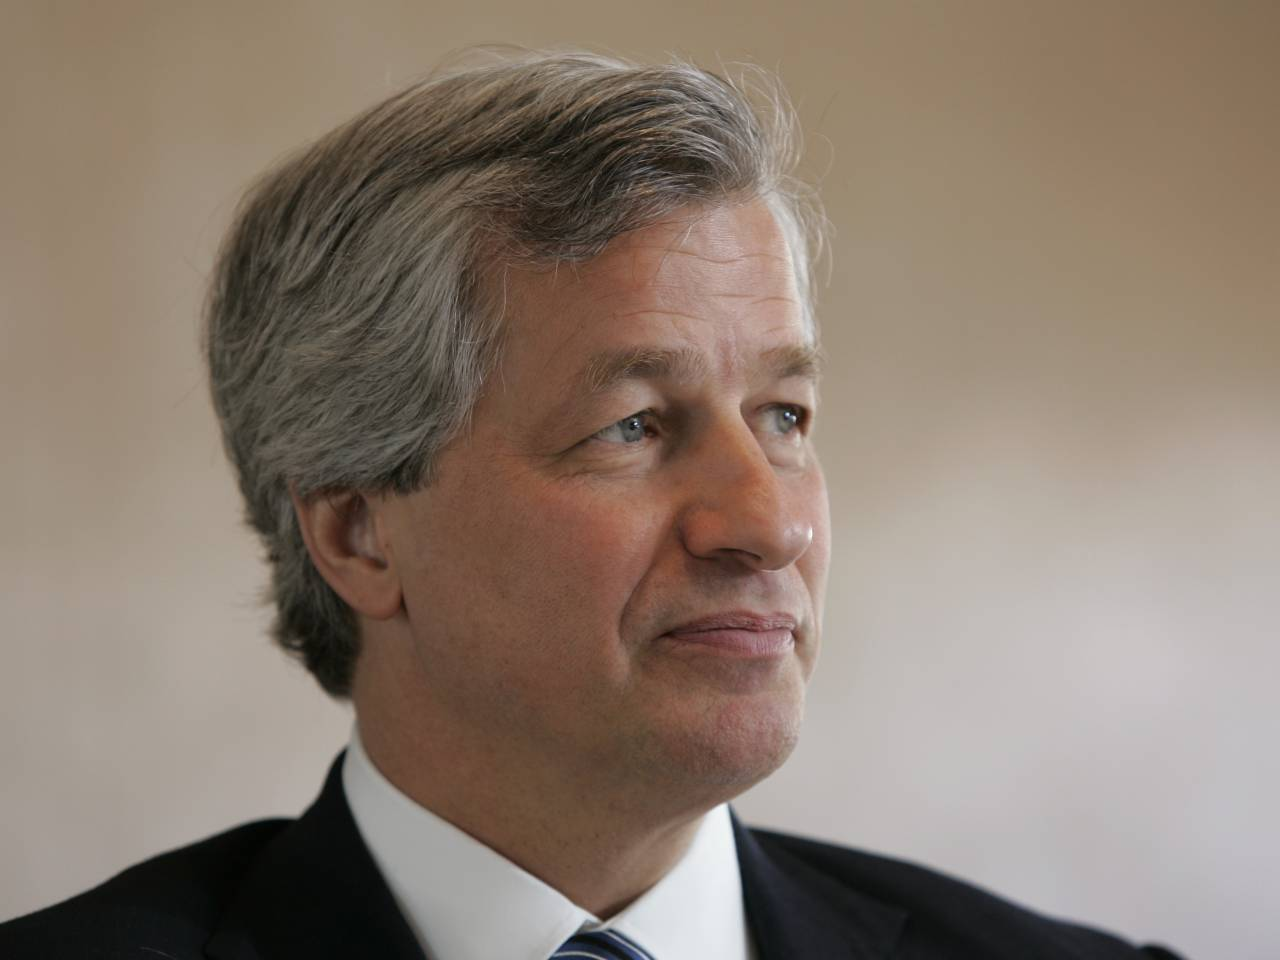 EnlargeJamie Dimon, CEO of JPMorgan Chase & Co. (Credit: AP/Paul Sakuma)